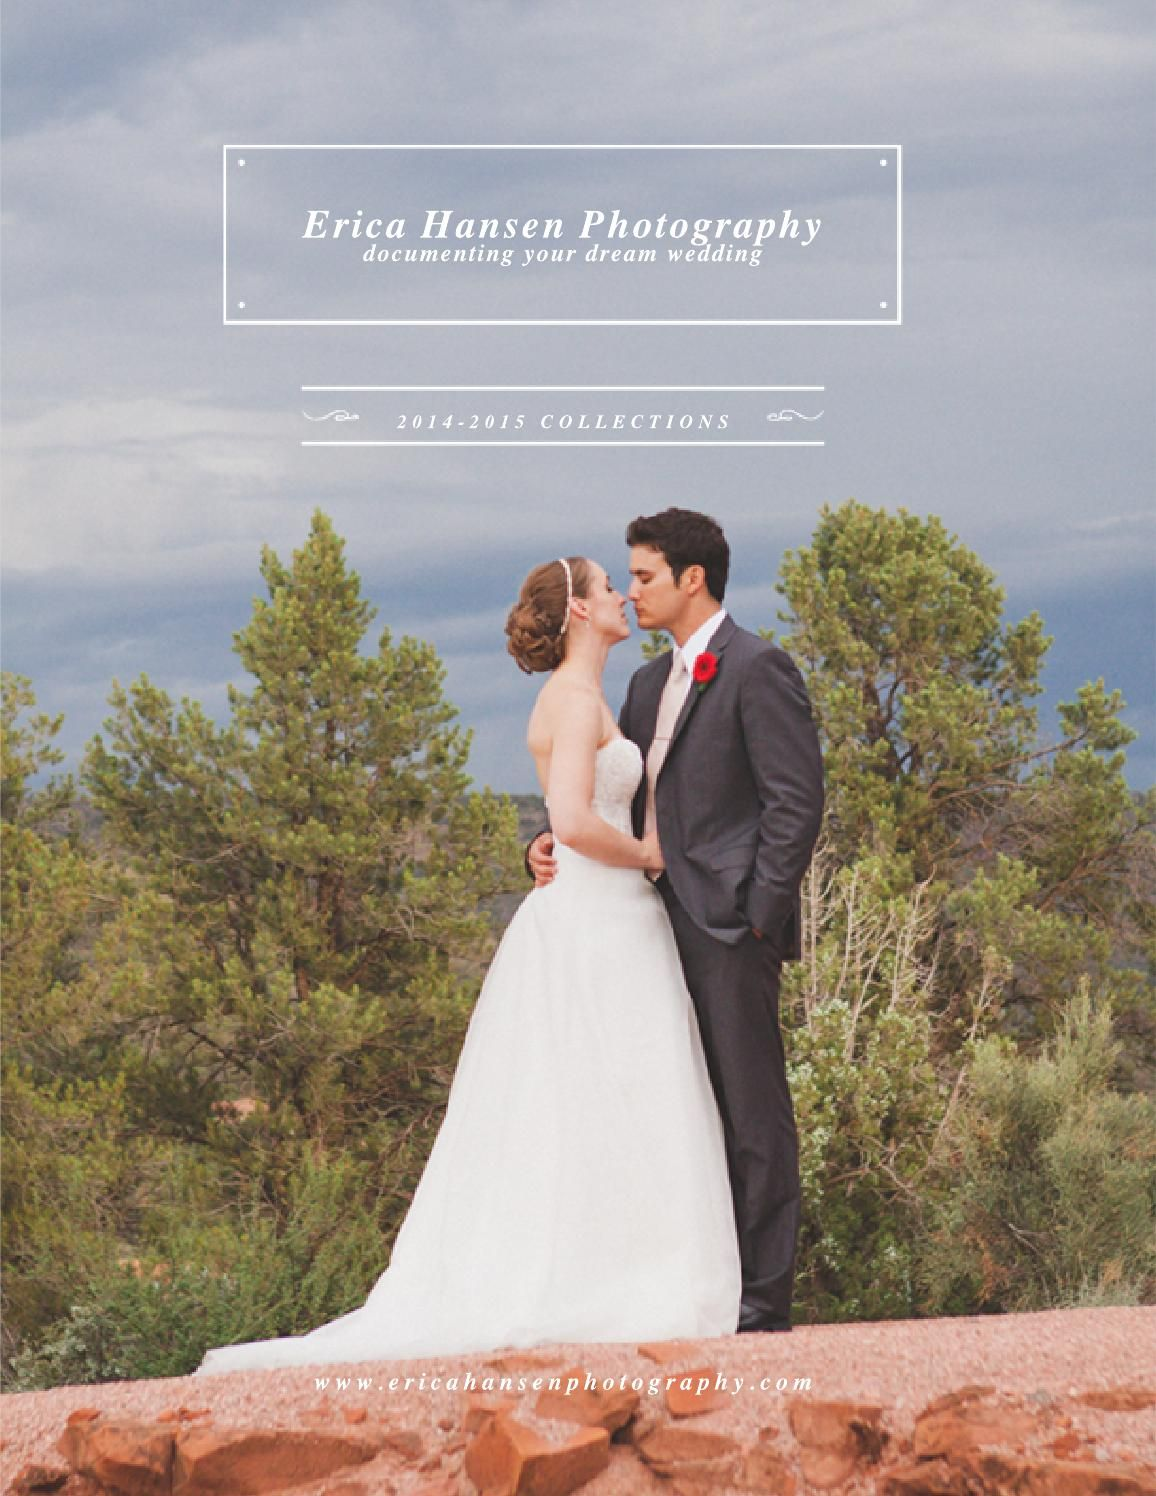 wedding photography magazine templates pricing guide price list